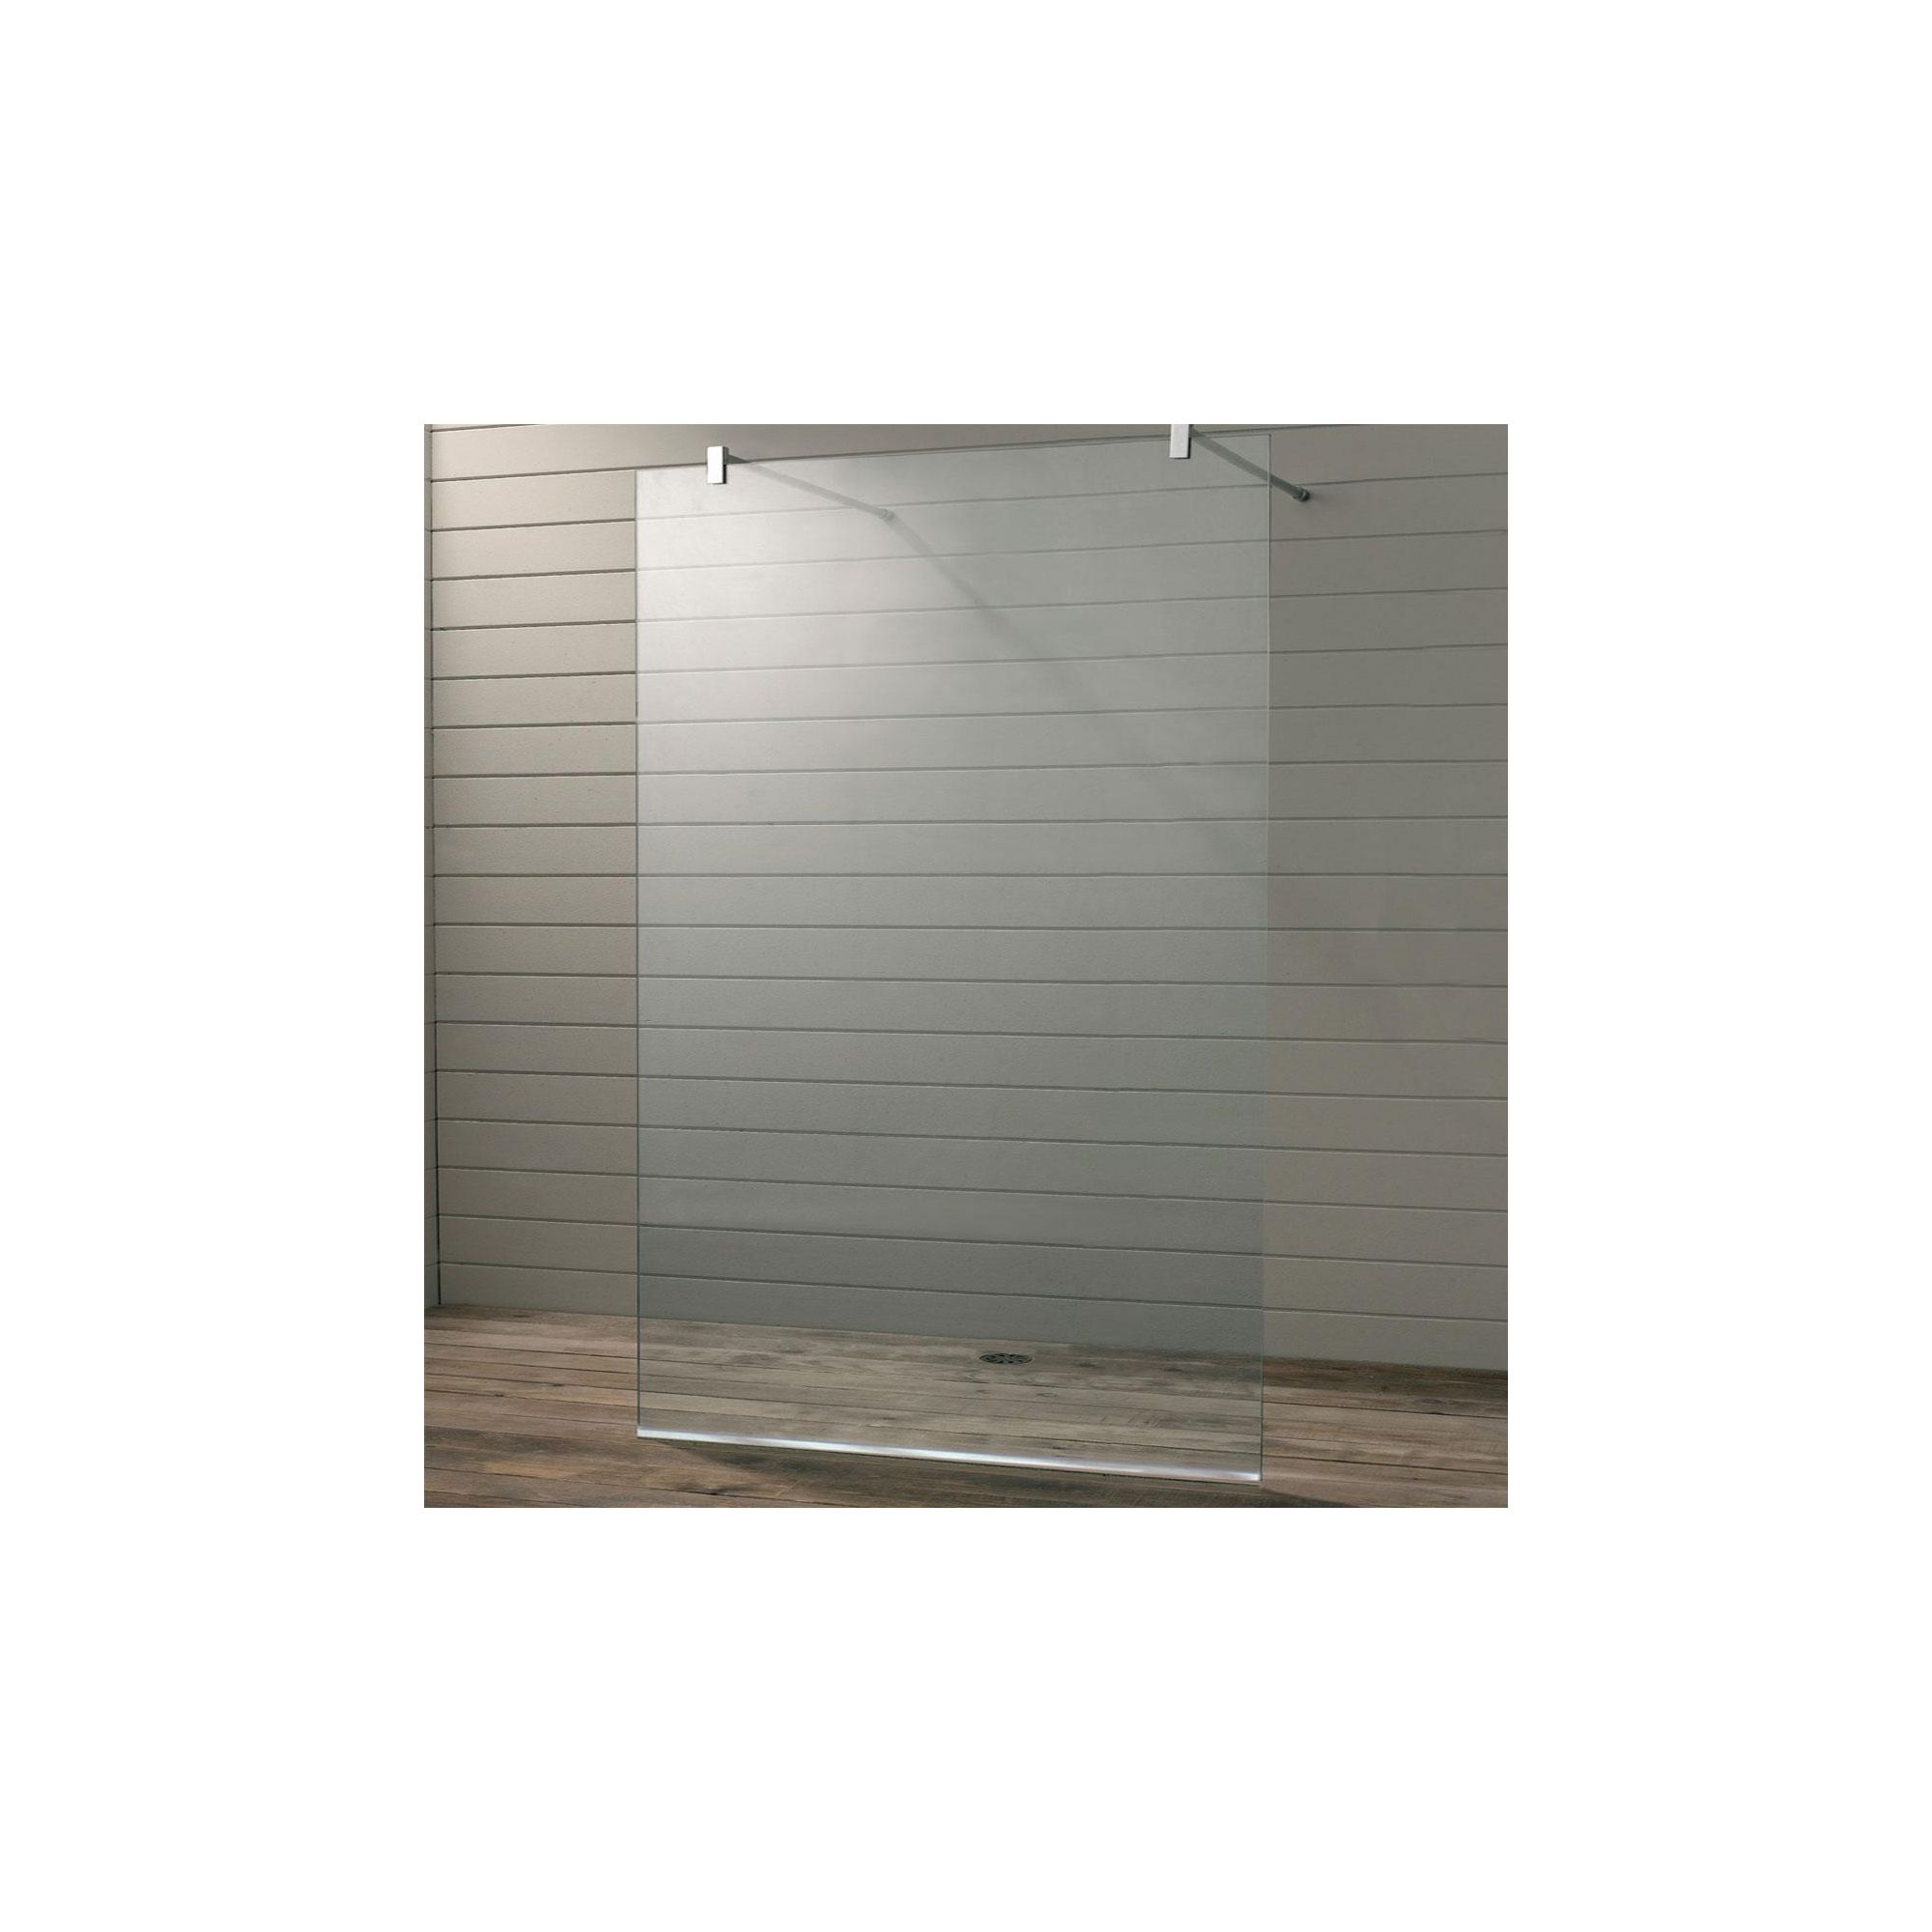 Duchy Premium Wet Room Glass Shower Panel, 1000mm x 700mm, 10mm Glass, Low Profile Tray at Tesco Direct